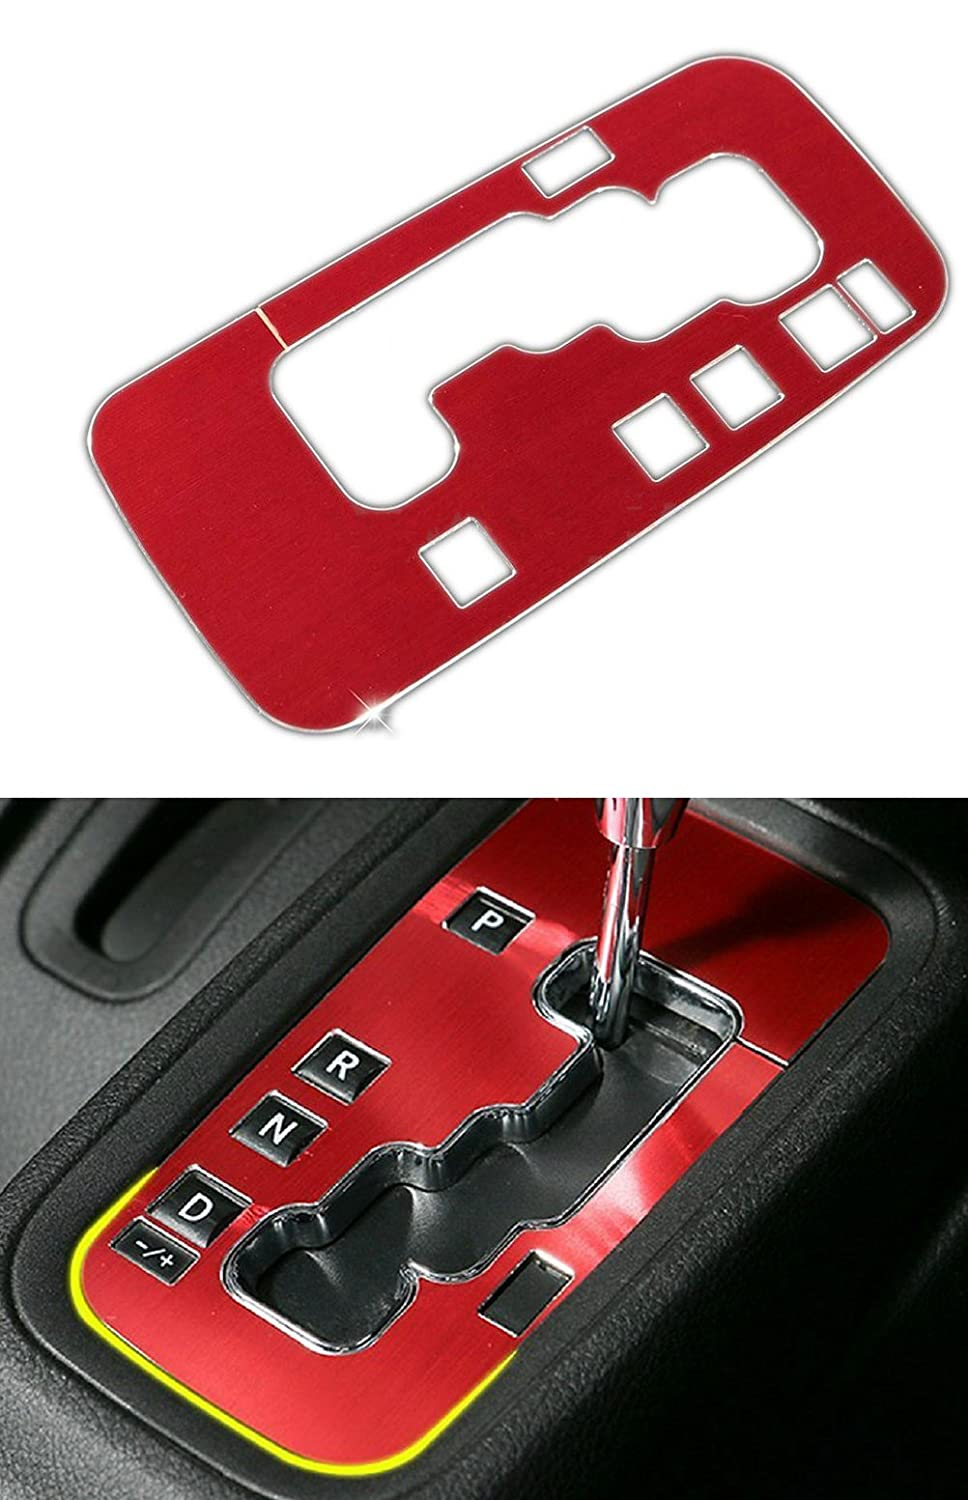 Danti Aluminum Interior Accessories Trim Gear Frame Cover for Jeep Wrangler 2012-2016 1pcs (Red) wenwen top